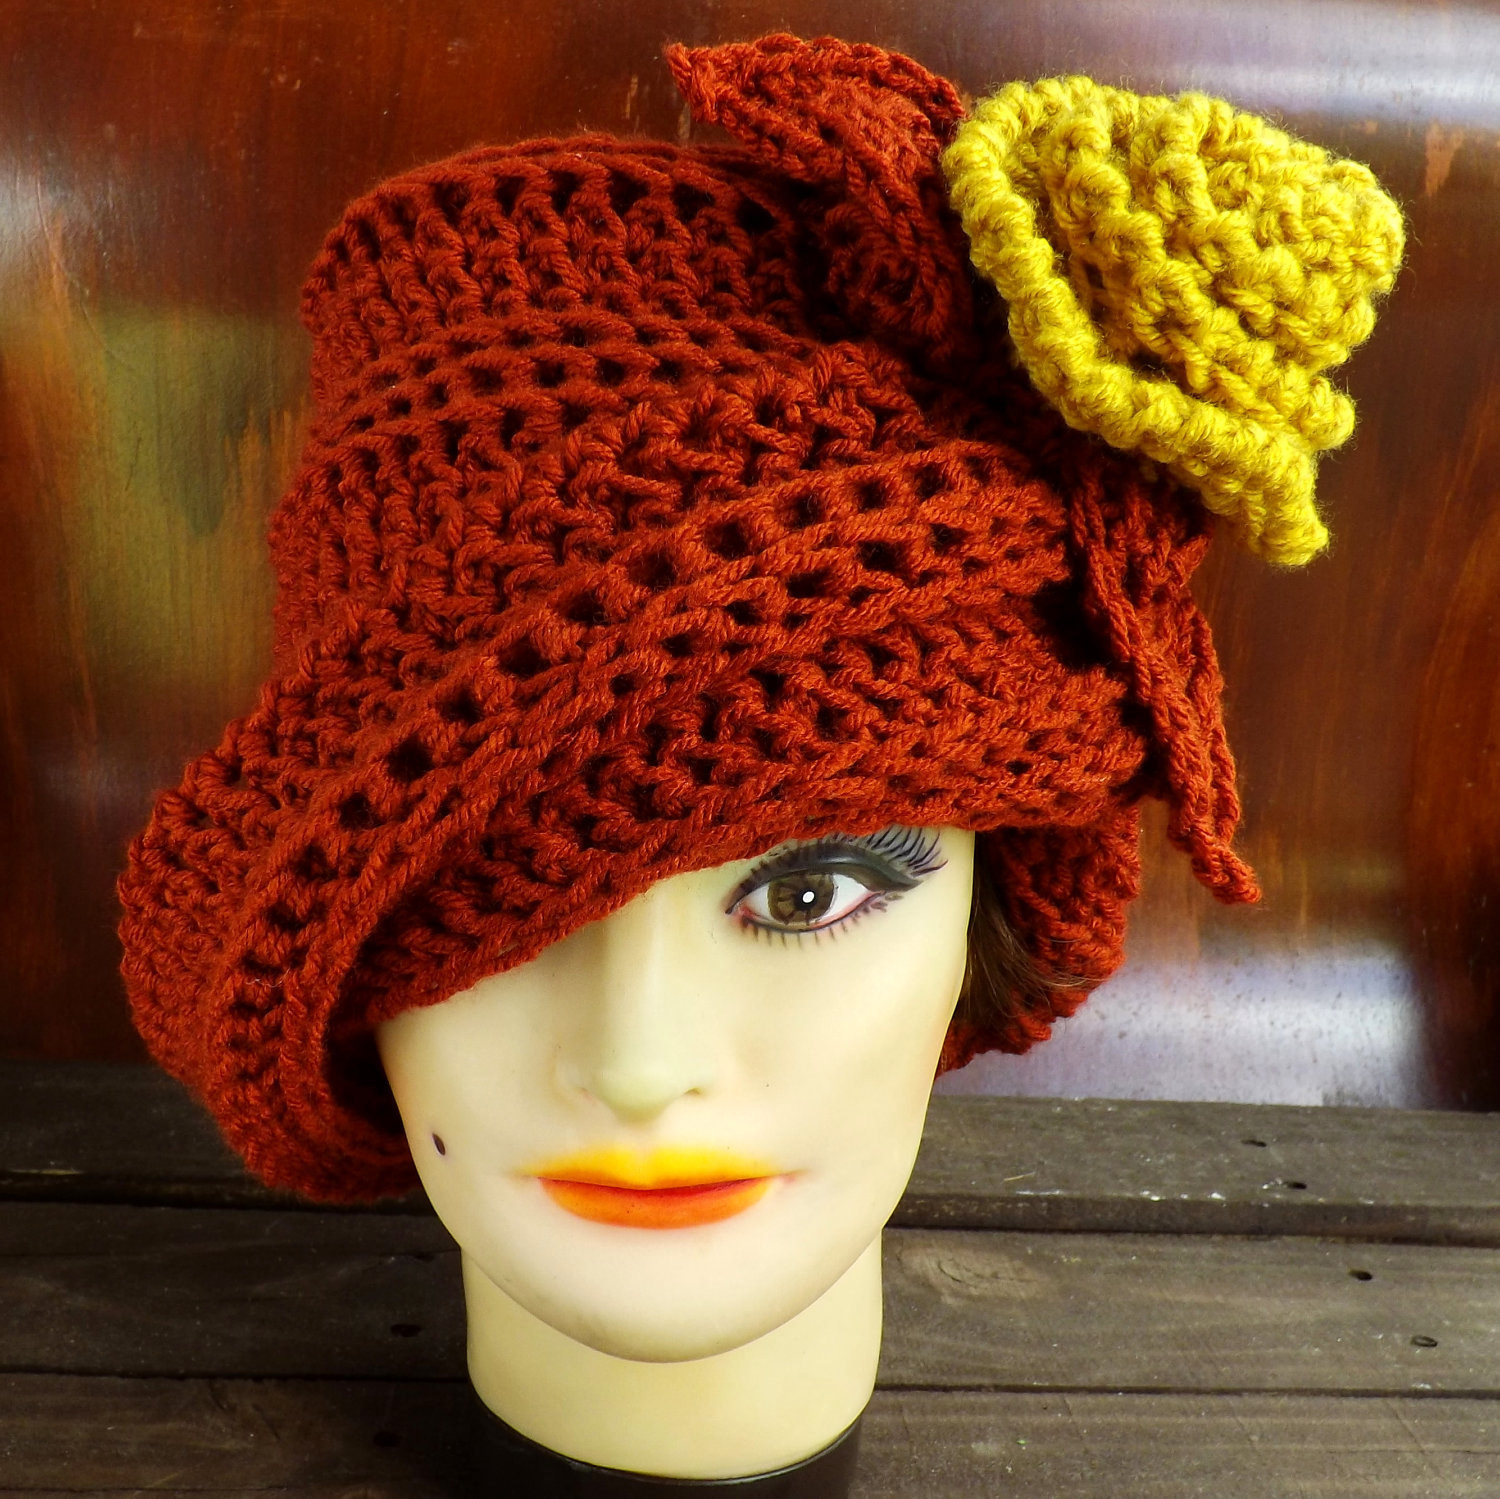 Crochet Hats for Women Awesome Cloche Hat 1920s Womens Crochet Hat Womens Hat Crochet Of Perfect 33 Ideas Crochet Hats for Women